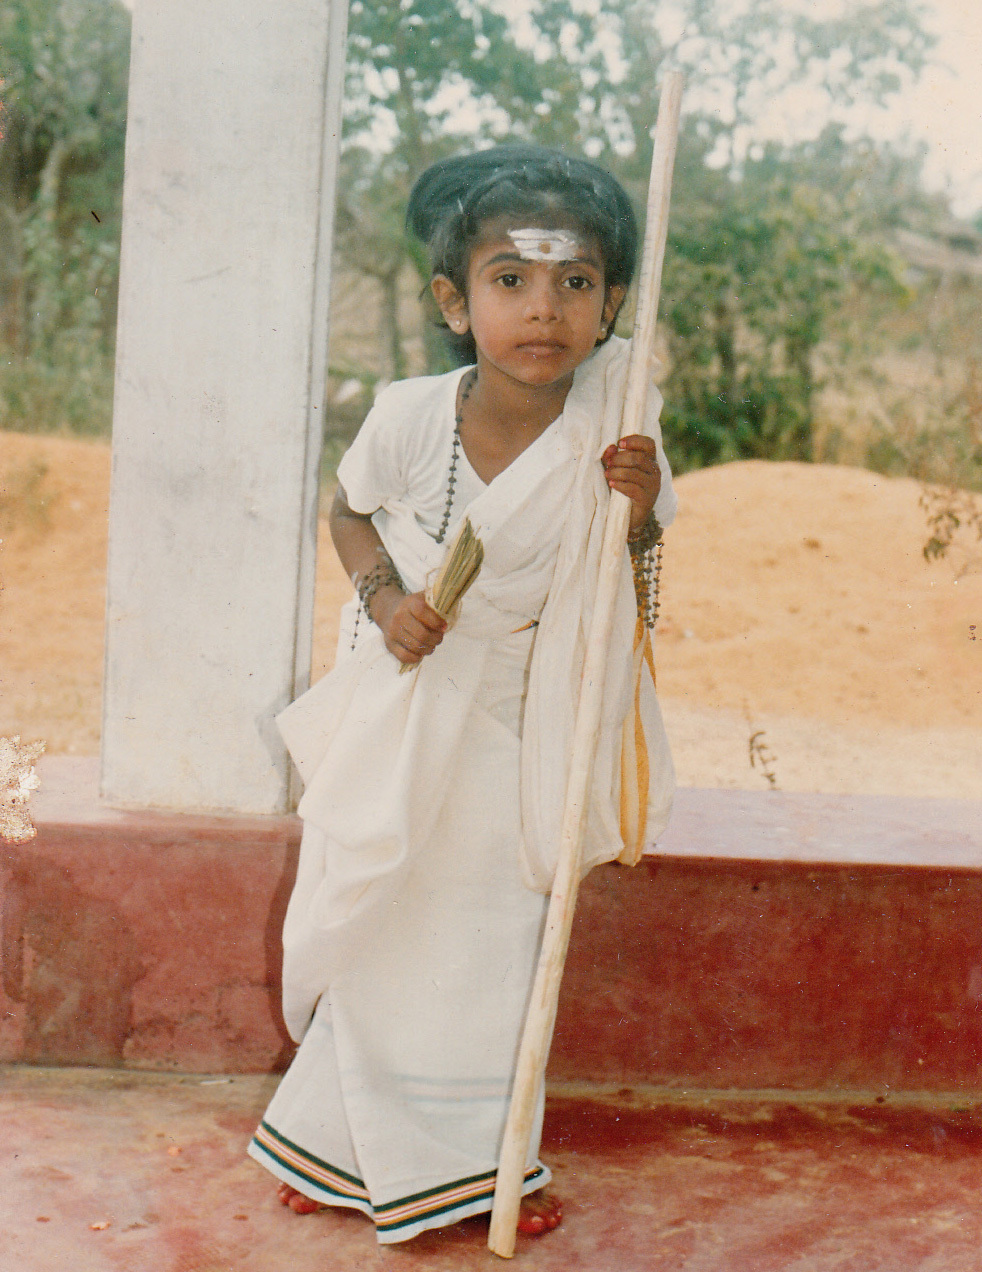 Sharmini as a young child.